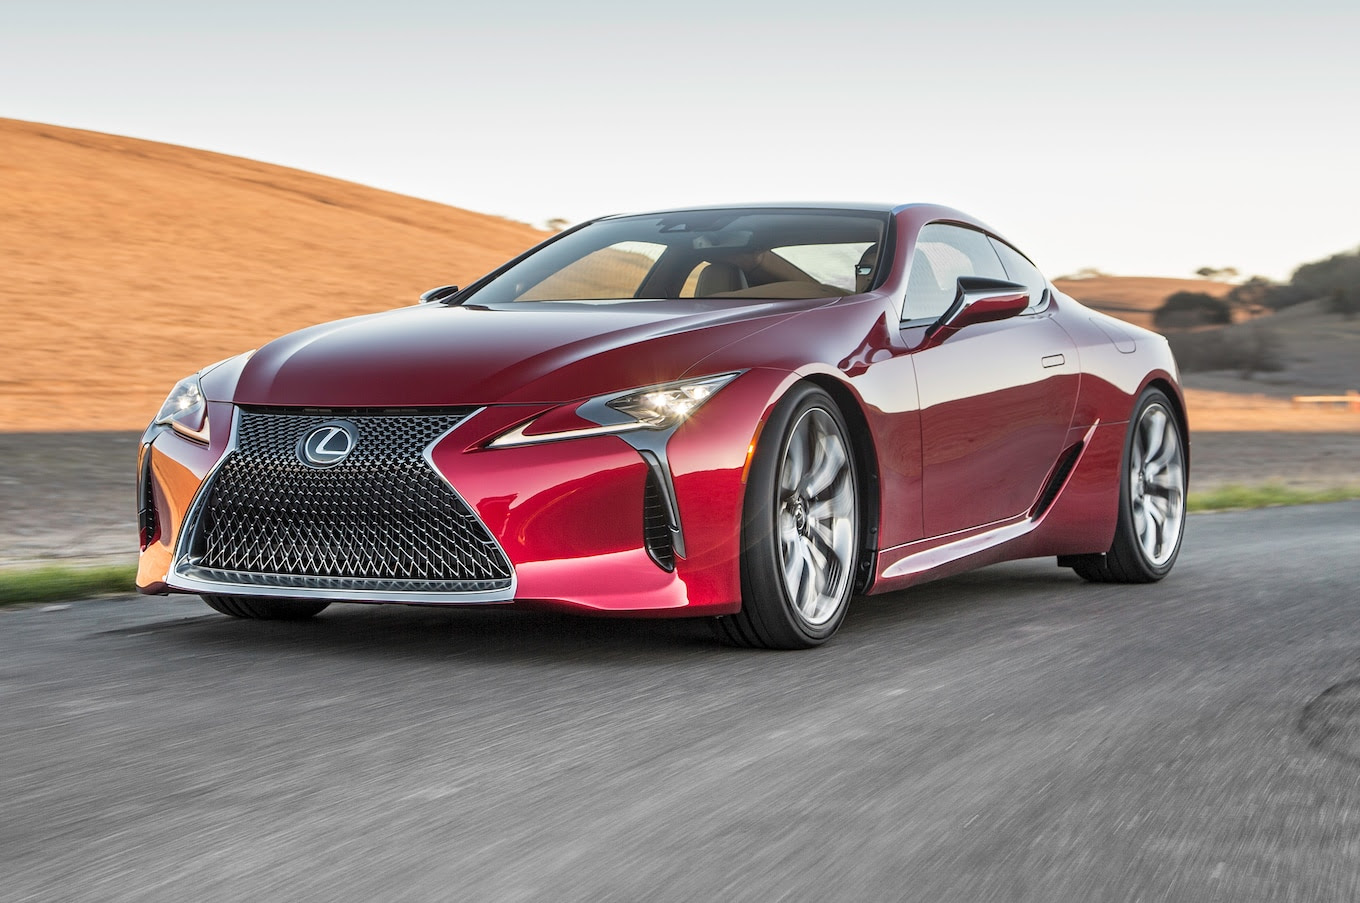 2018 Lexus LC 500 Packs 471 HP, Goes On Sale Next May